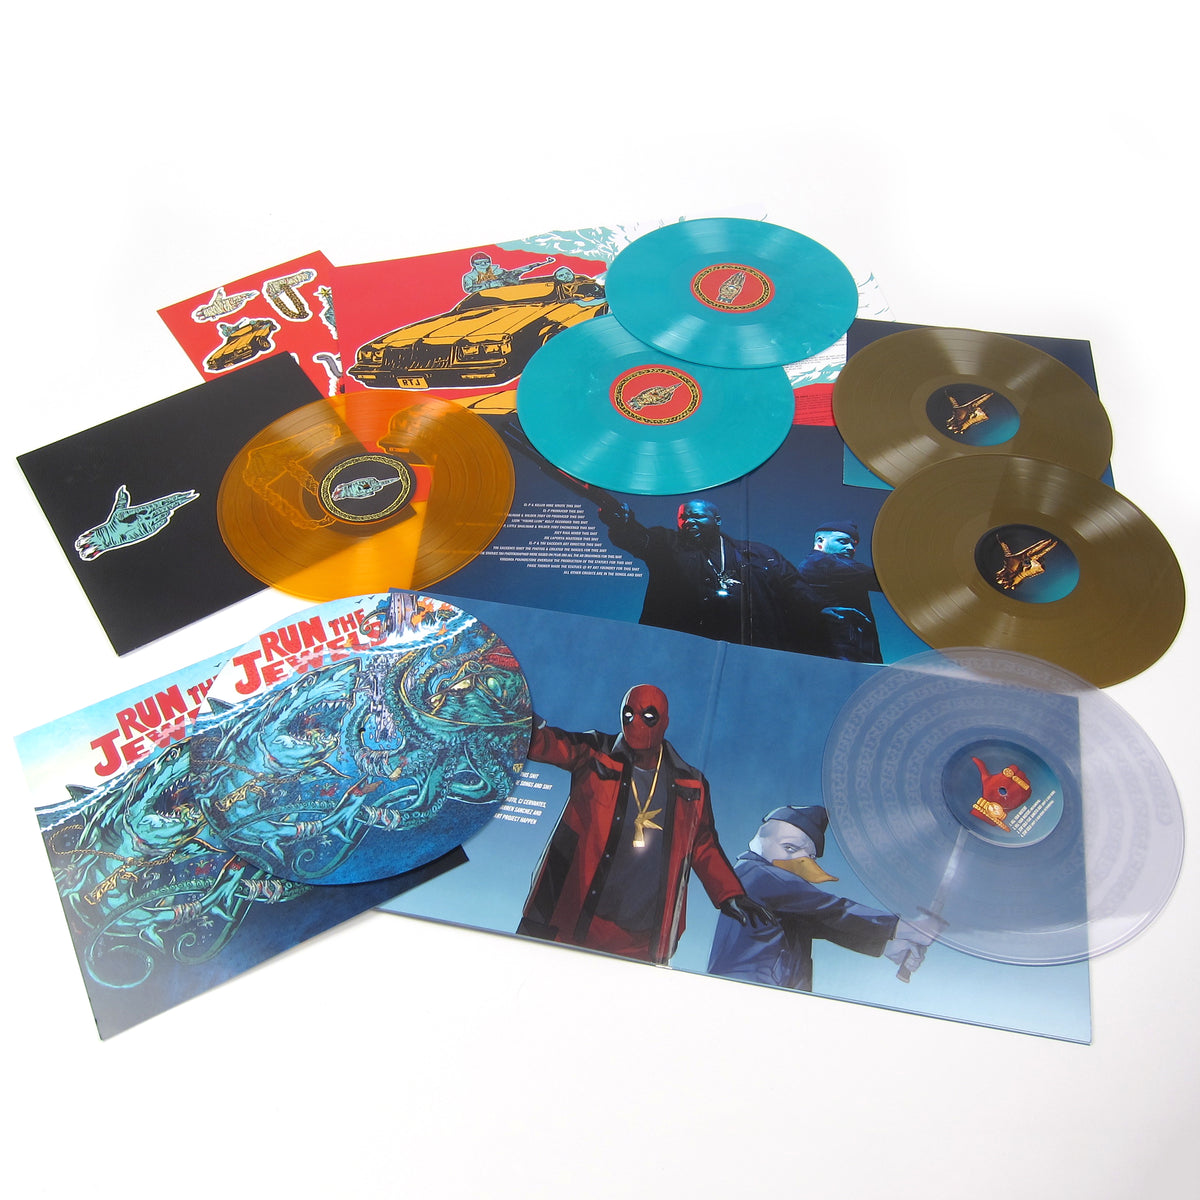 Run The Jewels: Vinyl LP Album Boxset (RTJ 1, 2, 3 + Stay Gold Jewel Box)